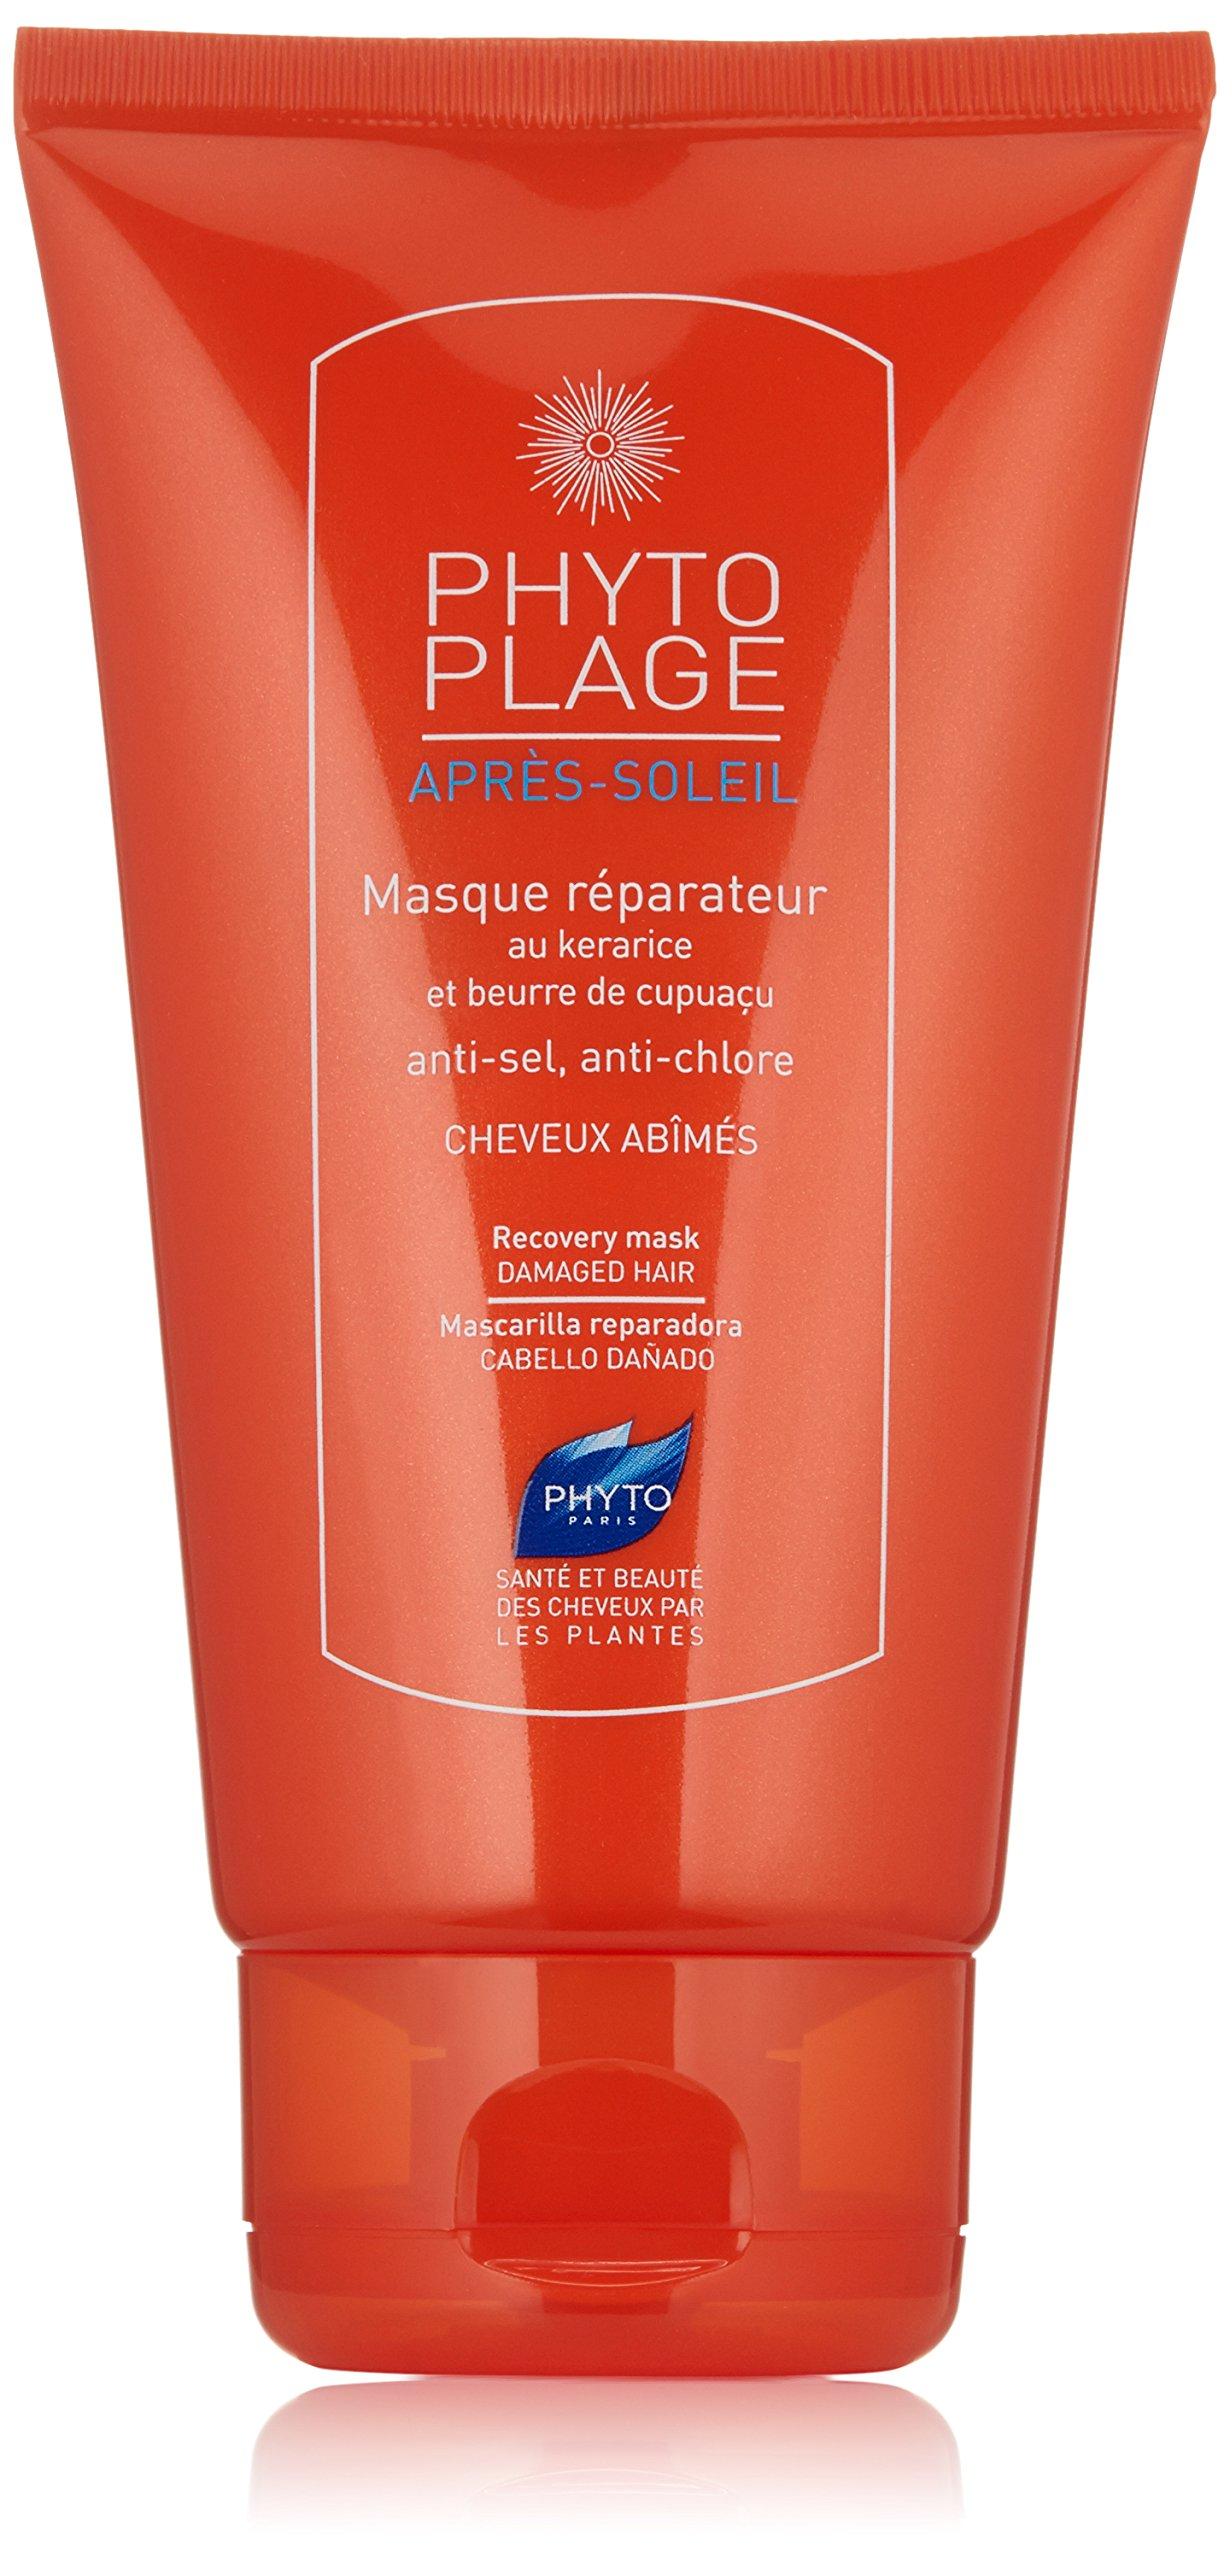 PHYTO PHYTOPLAGE After-Sun Recovery Mask, 4.2 oz.